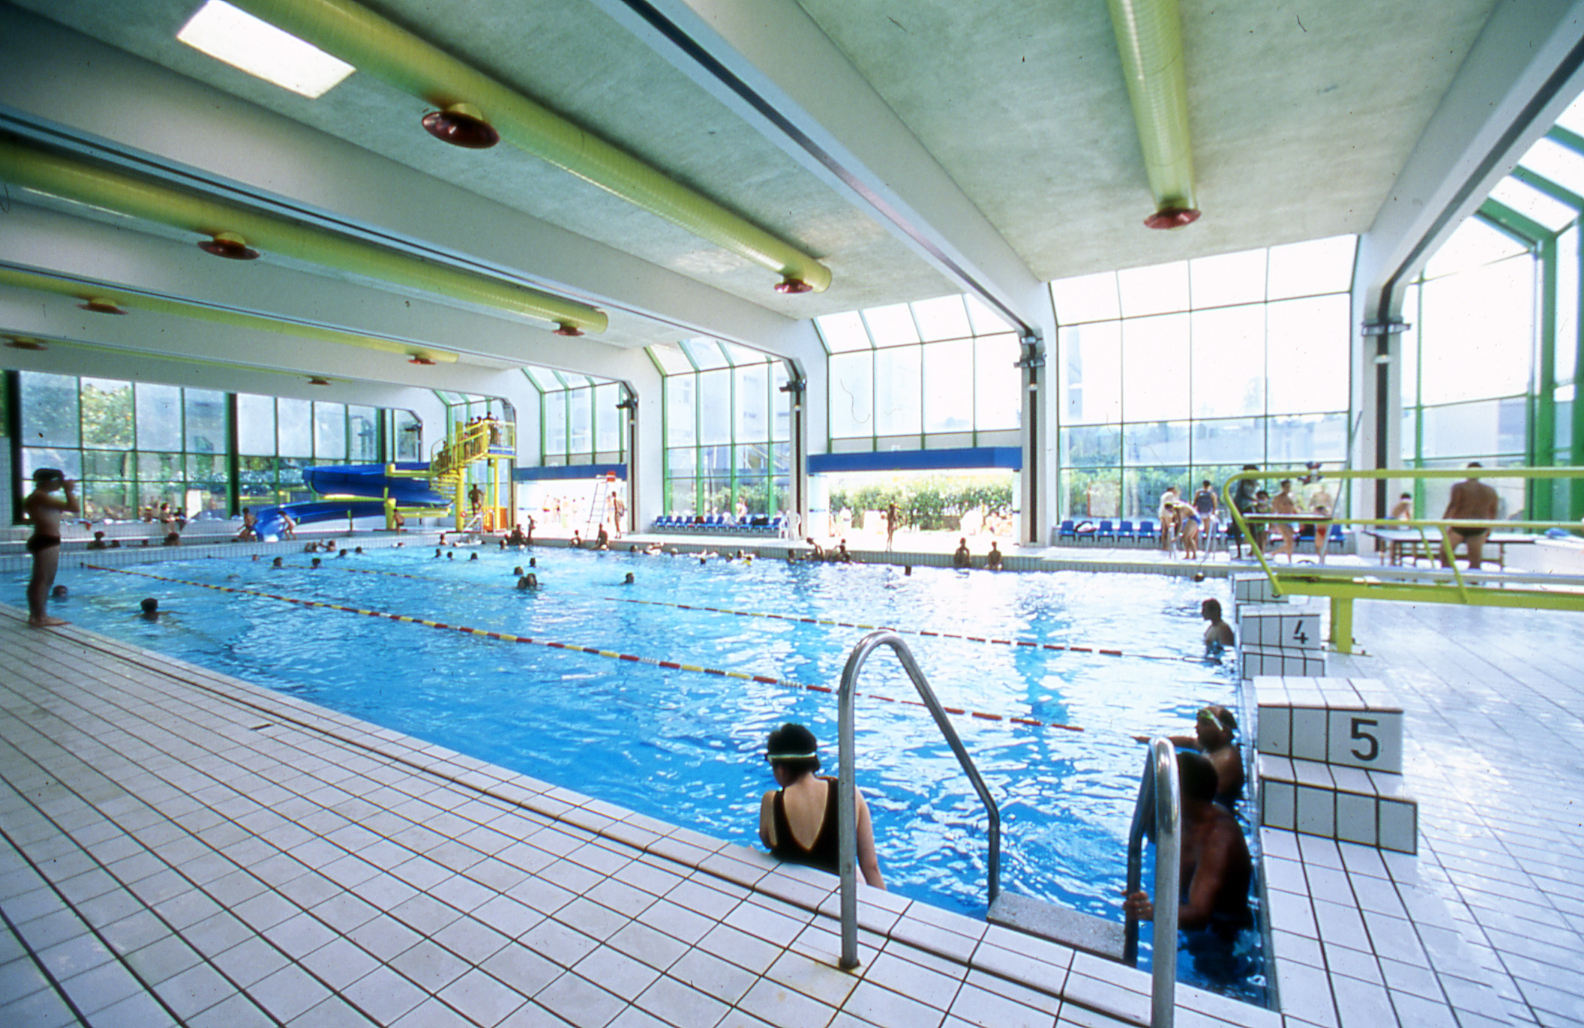 Piscine champerret sport 17e arrondissement paris for Piscine de reims